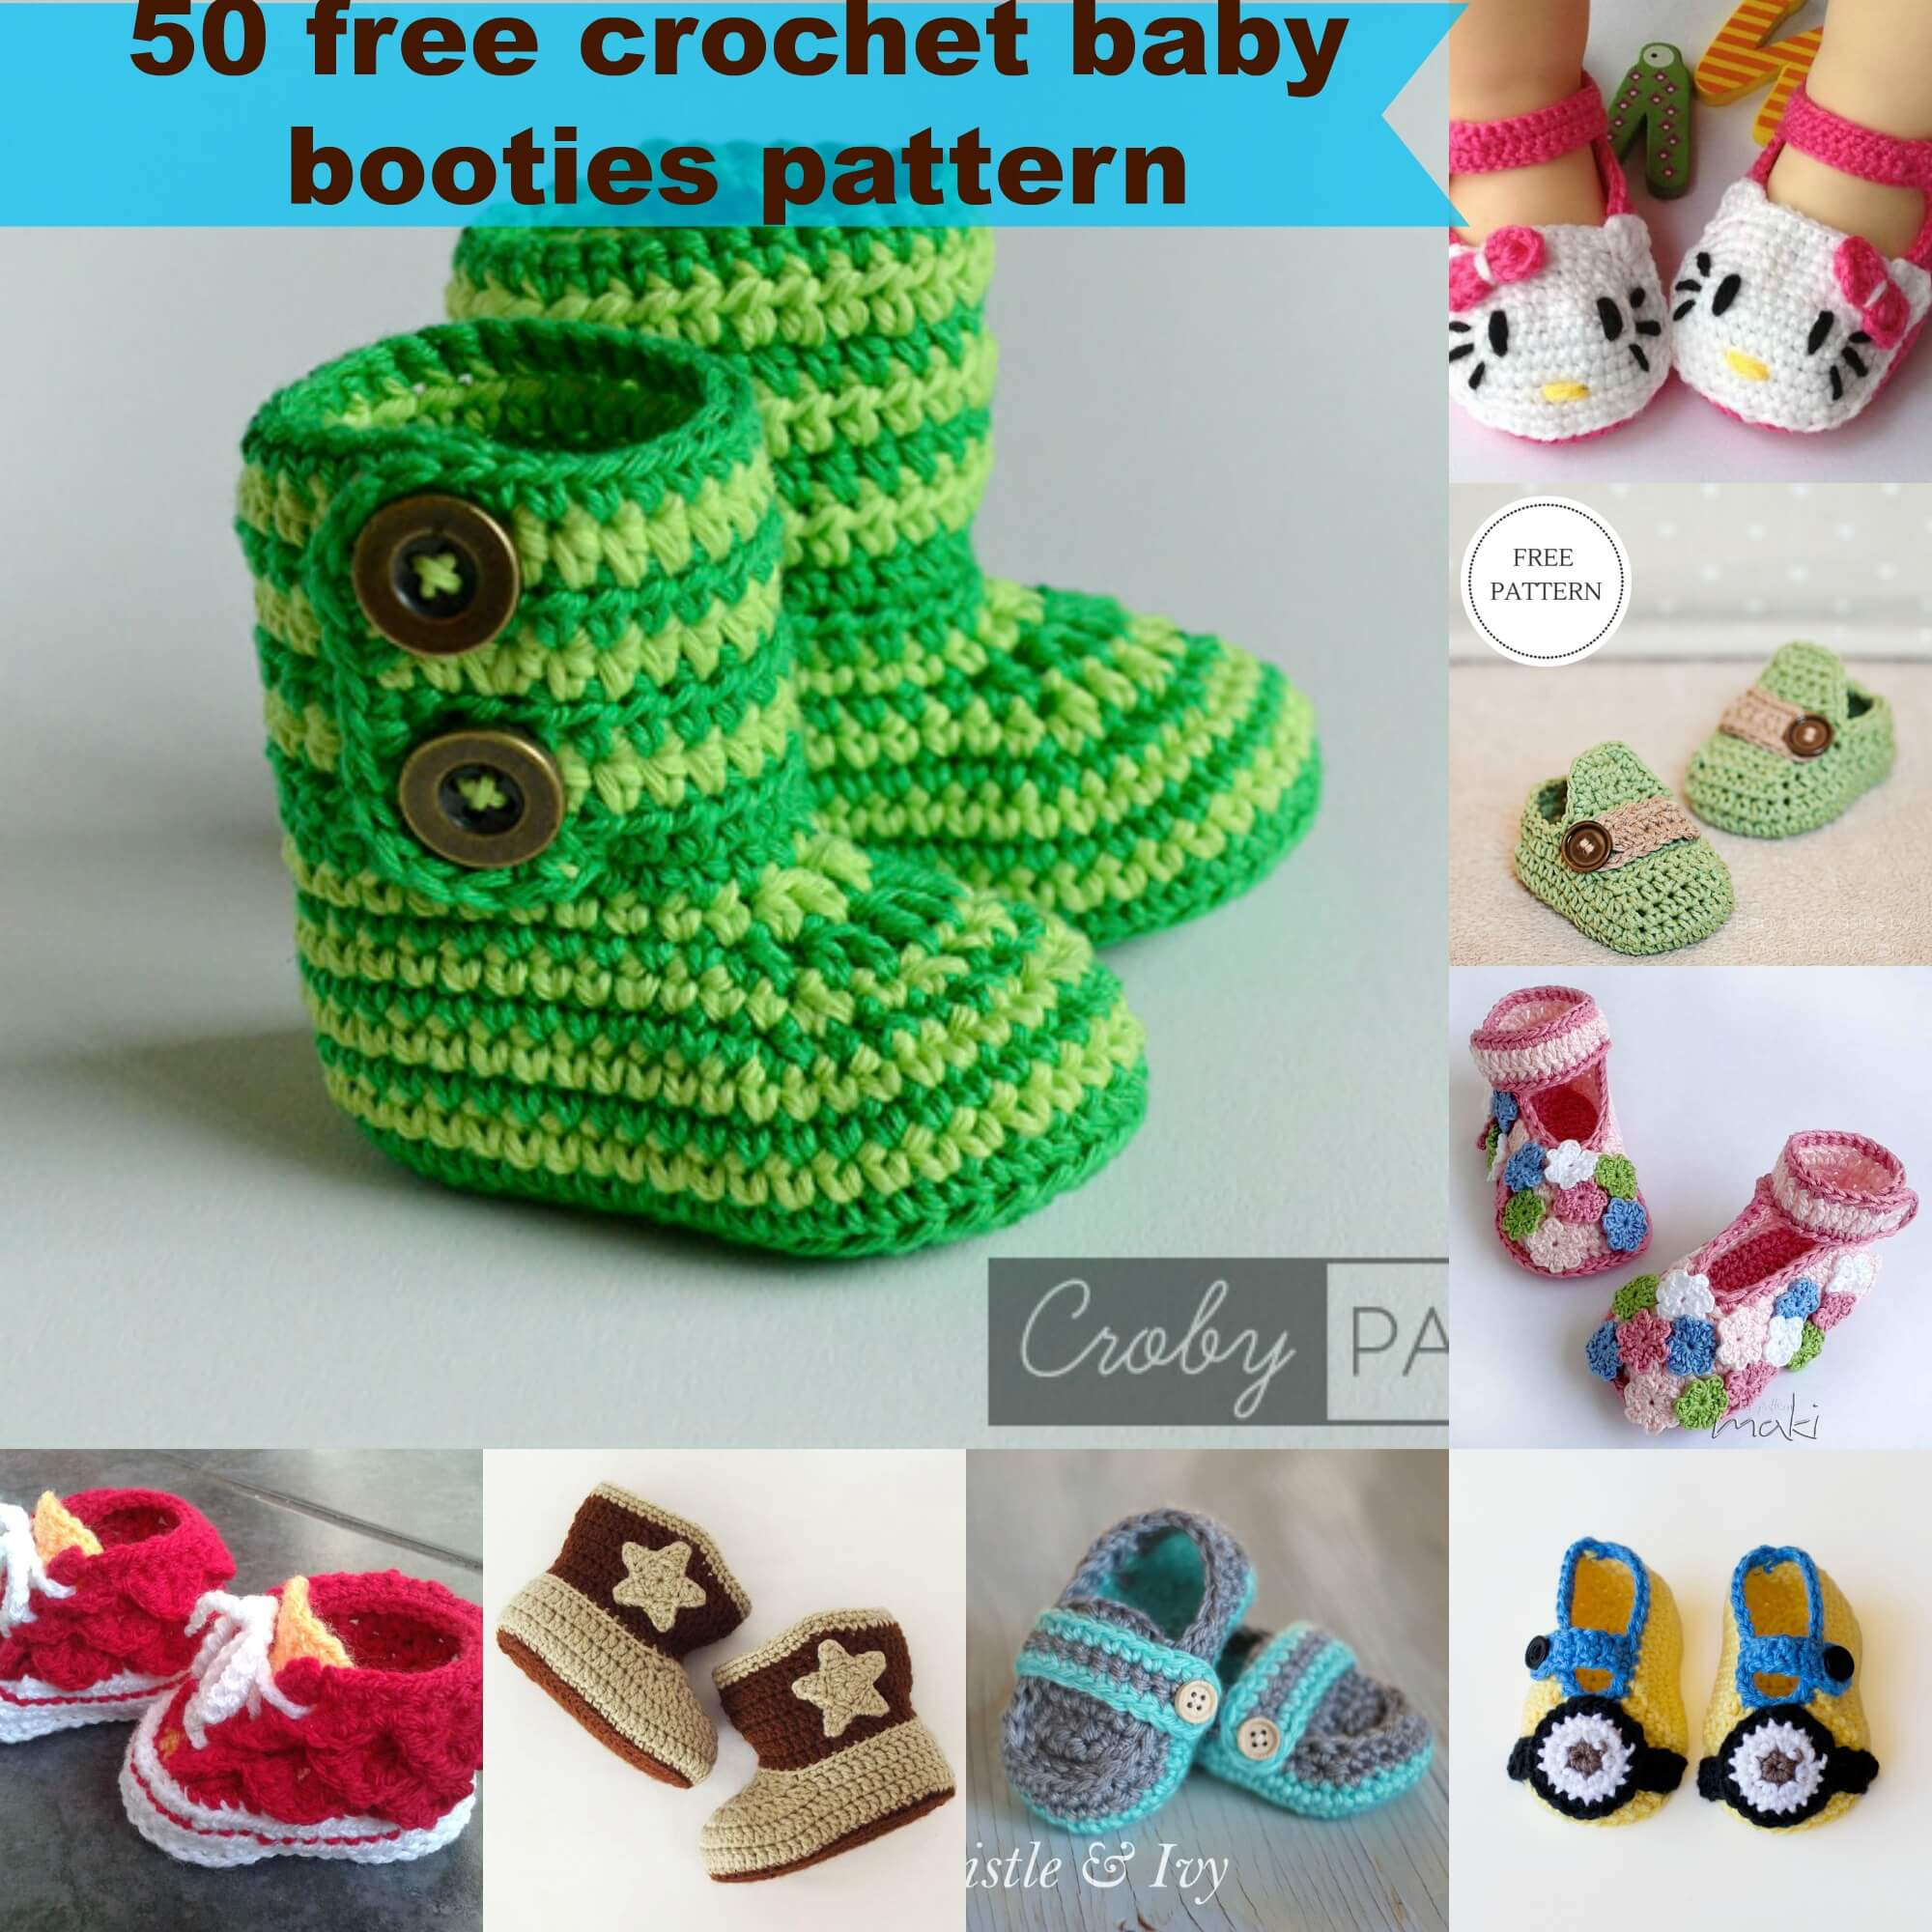 464a6e110b14 50 free crochet baby booties pattern by jennyandteddy